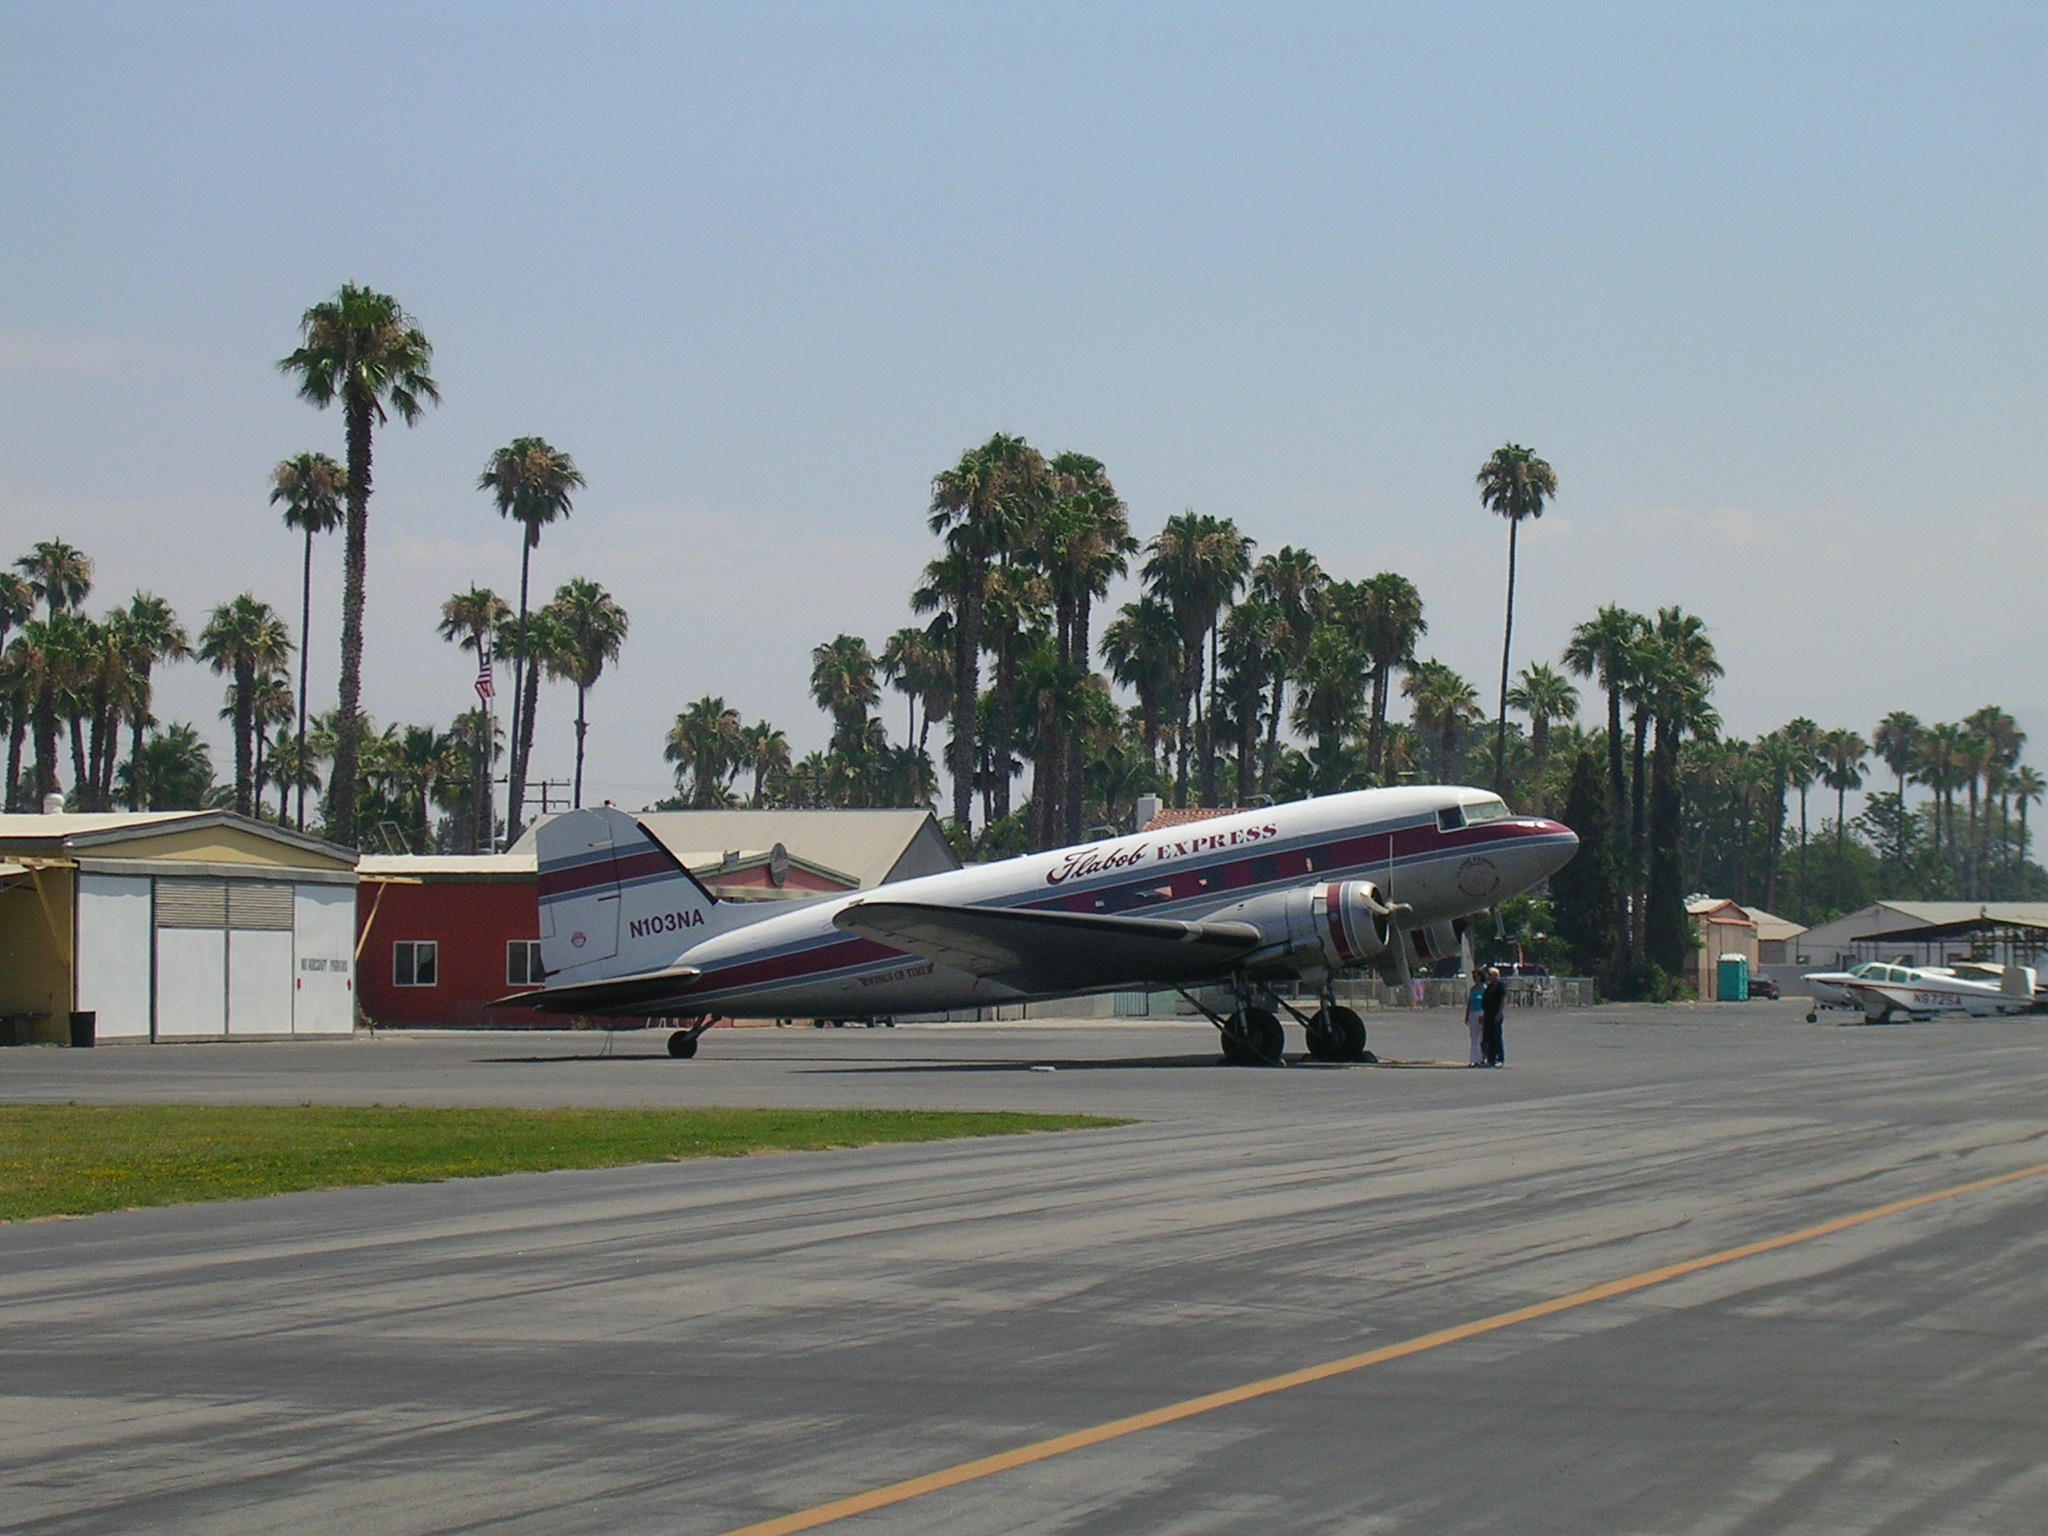 Cool old transport (DC-3?) at Flabob